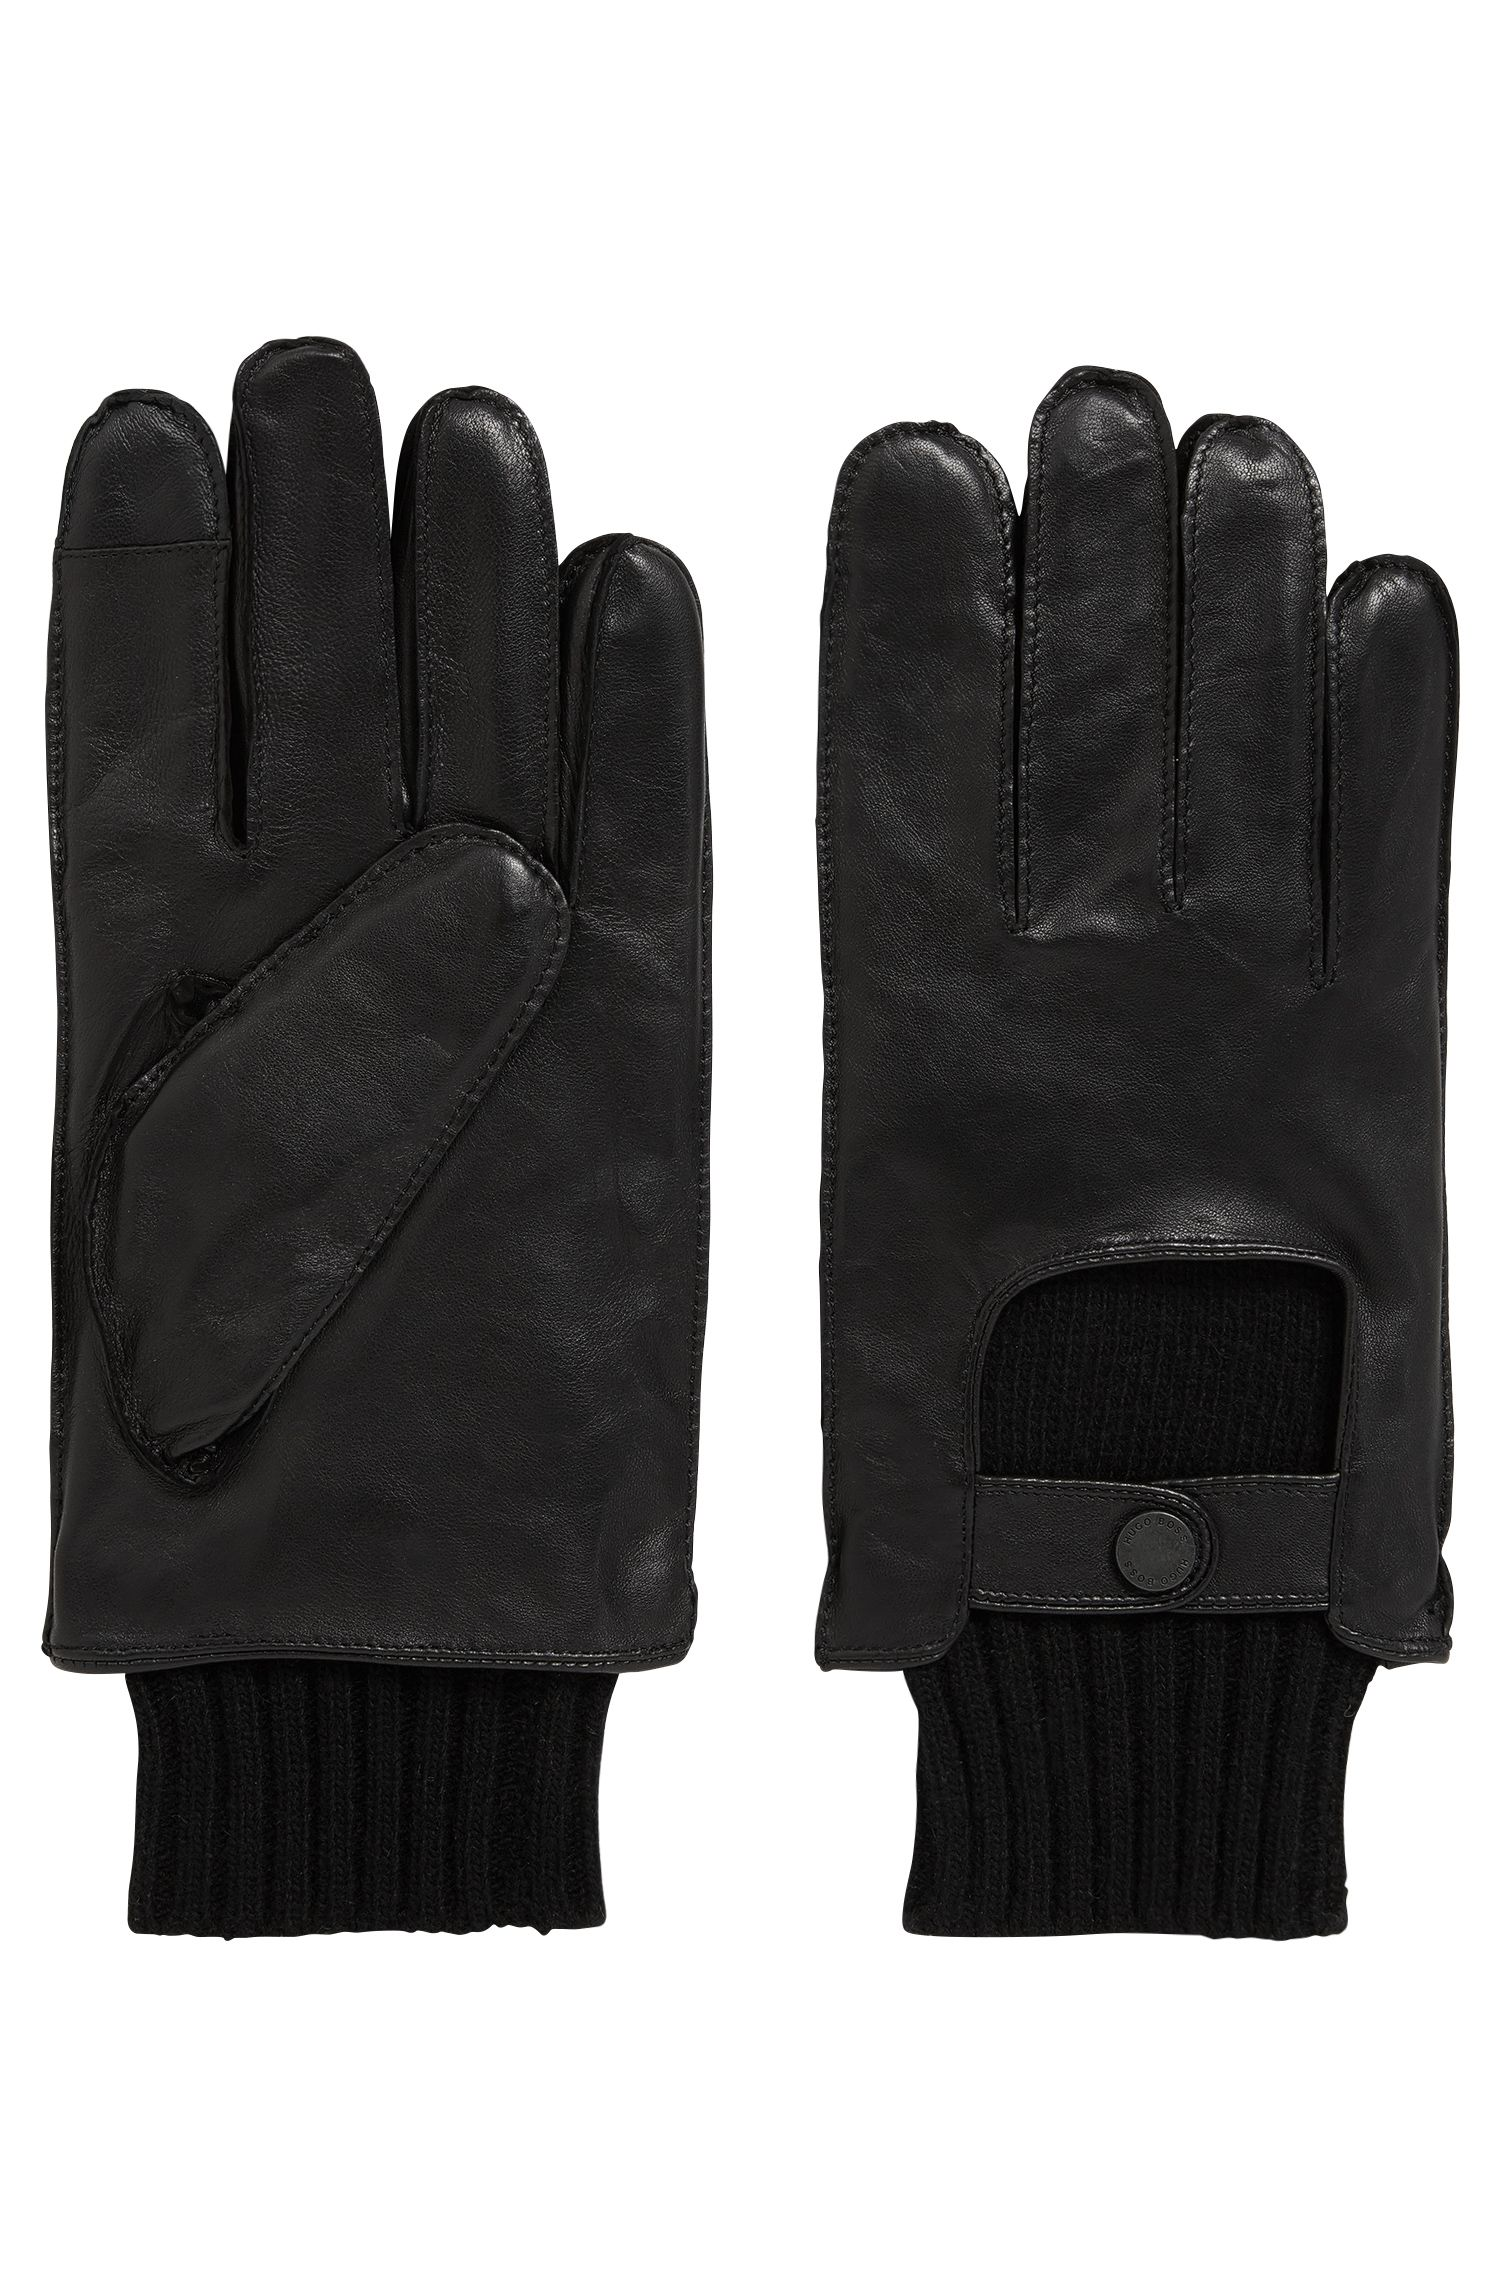 Smooth leather gloves with knitted cuffs